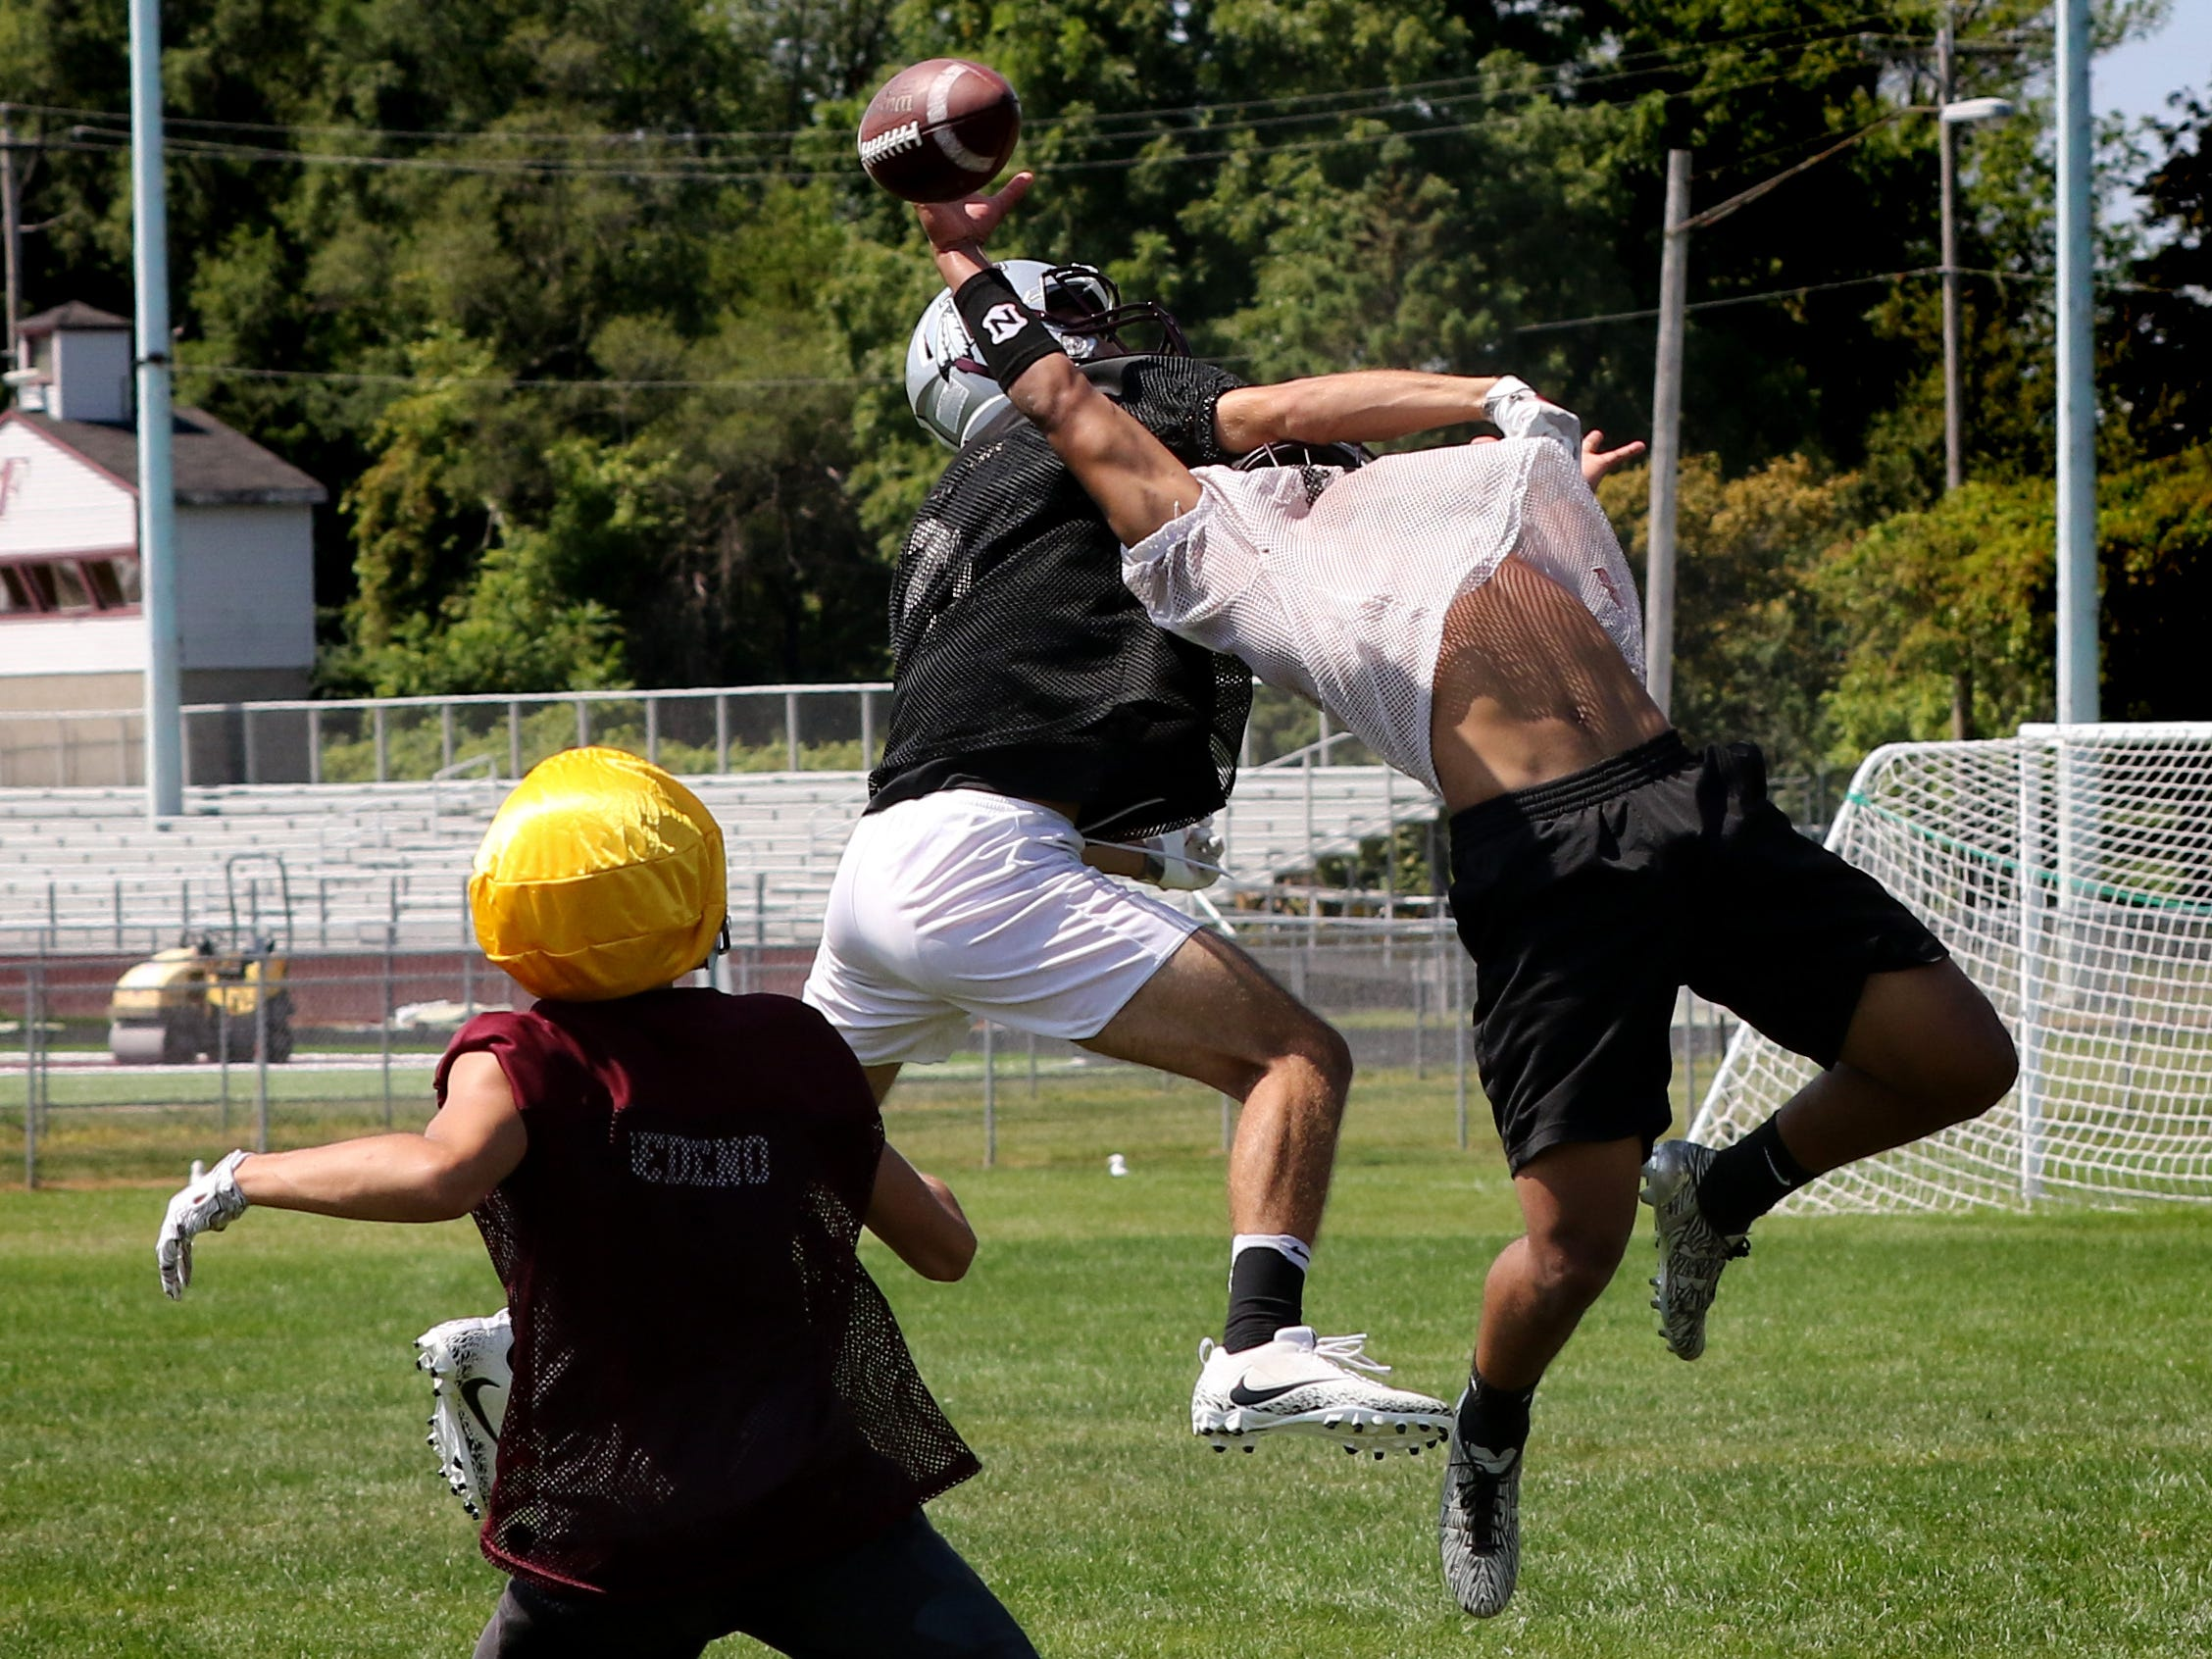 A pass play is broken up for an interception during Menomonee Falls football team's second day of practice on Aug. 1.